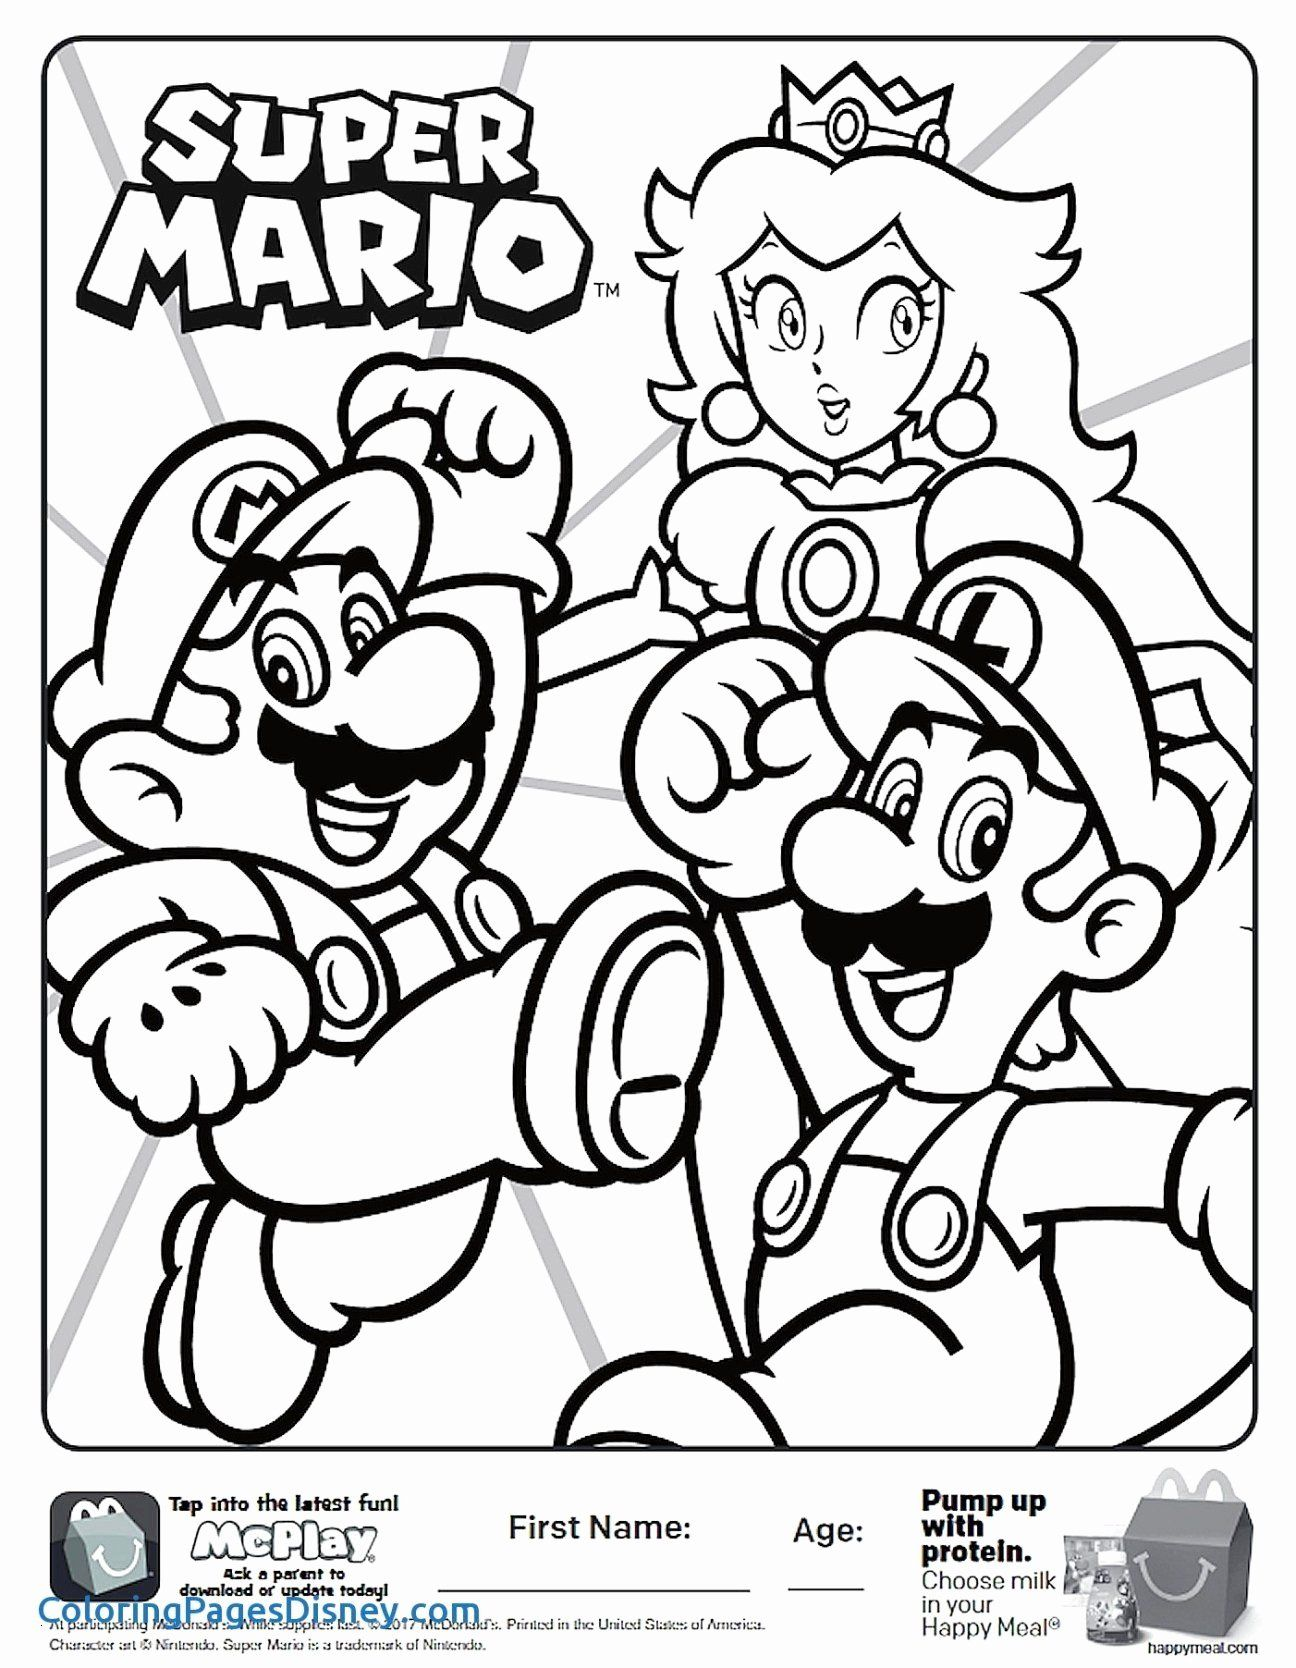 Wedding Coloring Pages Free Printable Luxury Coloring Wedding Coloring Pages Luxury Bo In 2020 Super Mario Coloring Pages Mario Coloring Pages Valentine Coloring Pages